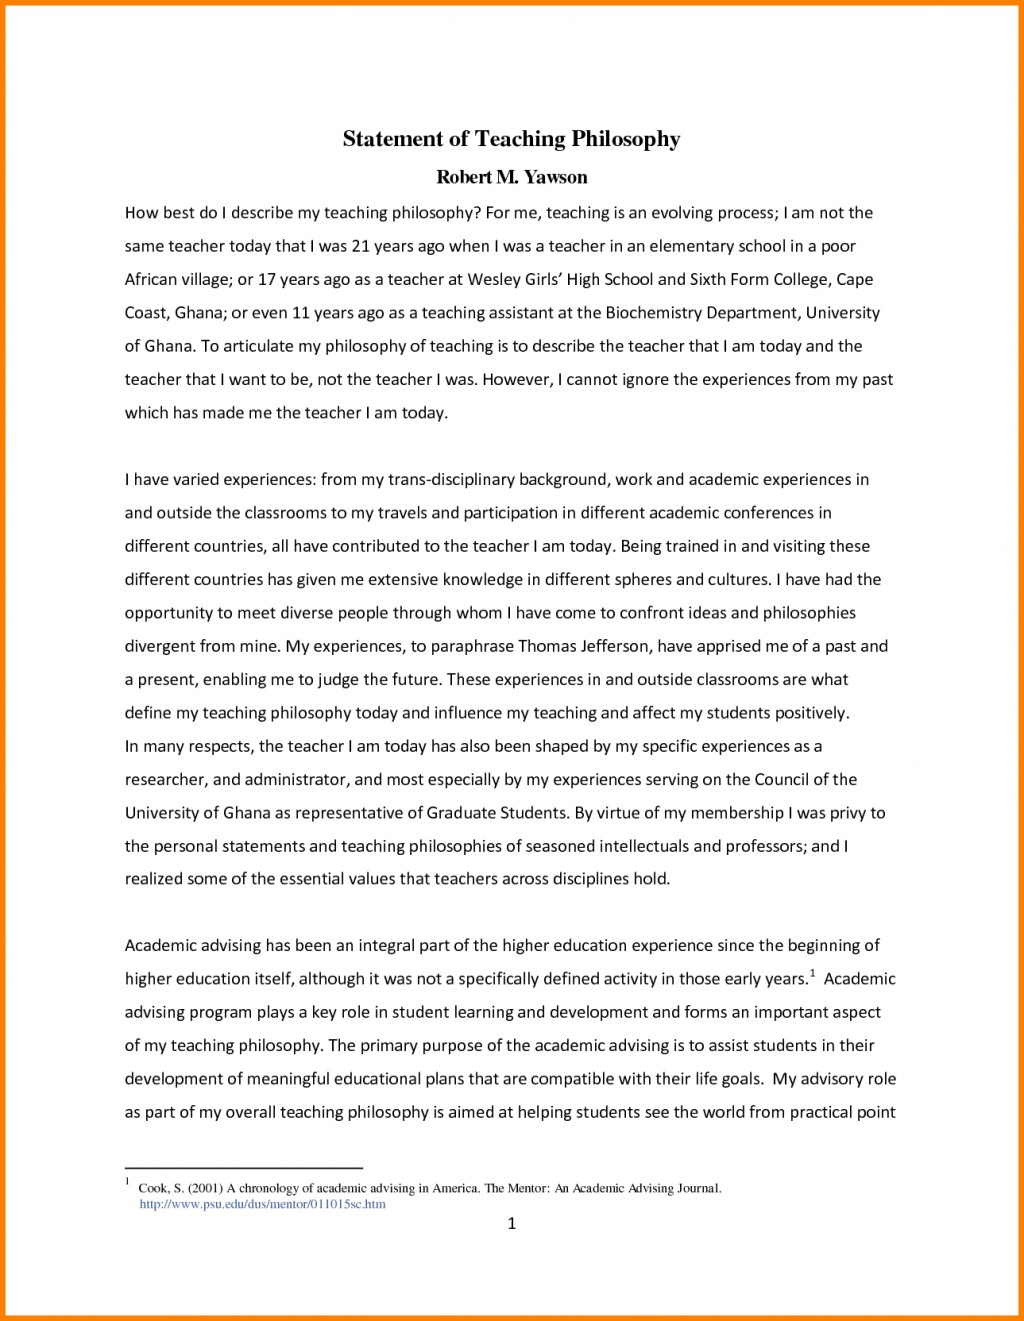 004 Why I Want To An Early Childhood Teacher Essay Example Future Teachers Philosophy Of Education Coursework Academic Essays On Pevita Examples L My Exceptional Be A Preschool Large